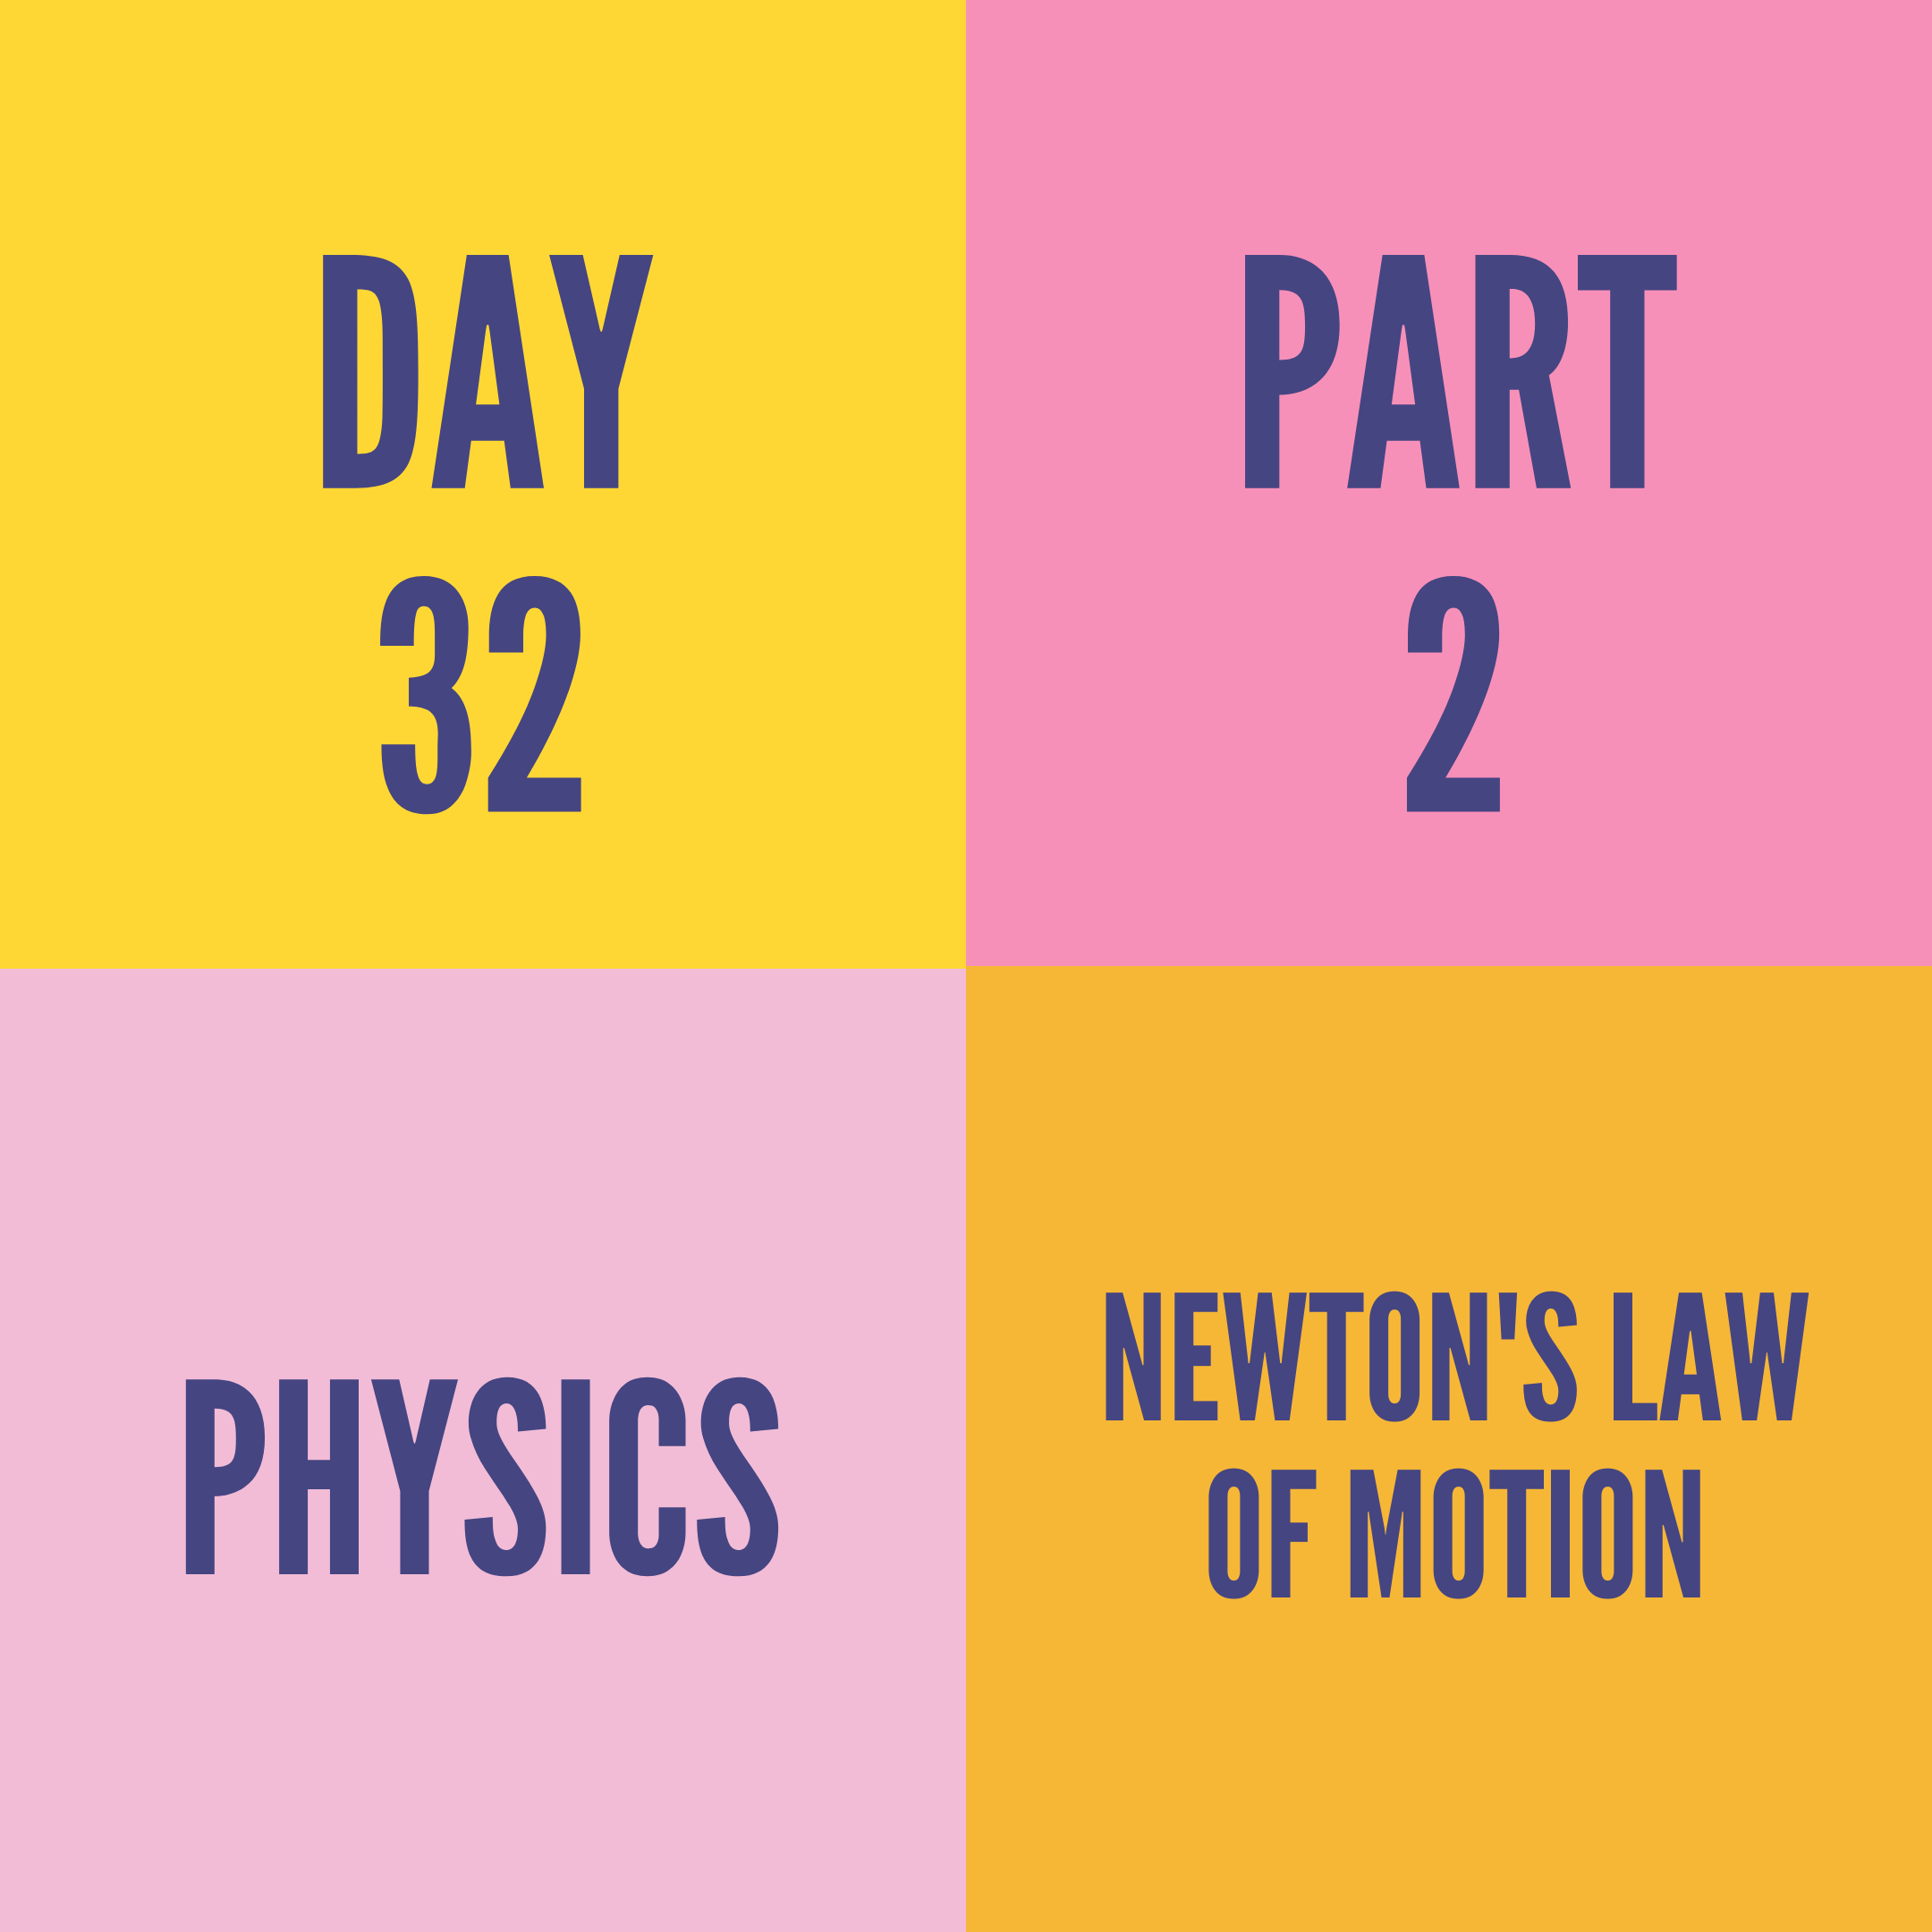 DAY-32 PART-2 NEWTON'S LAW OF MOTION